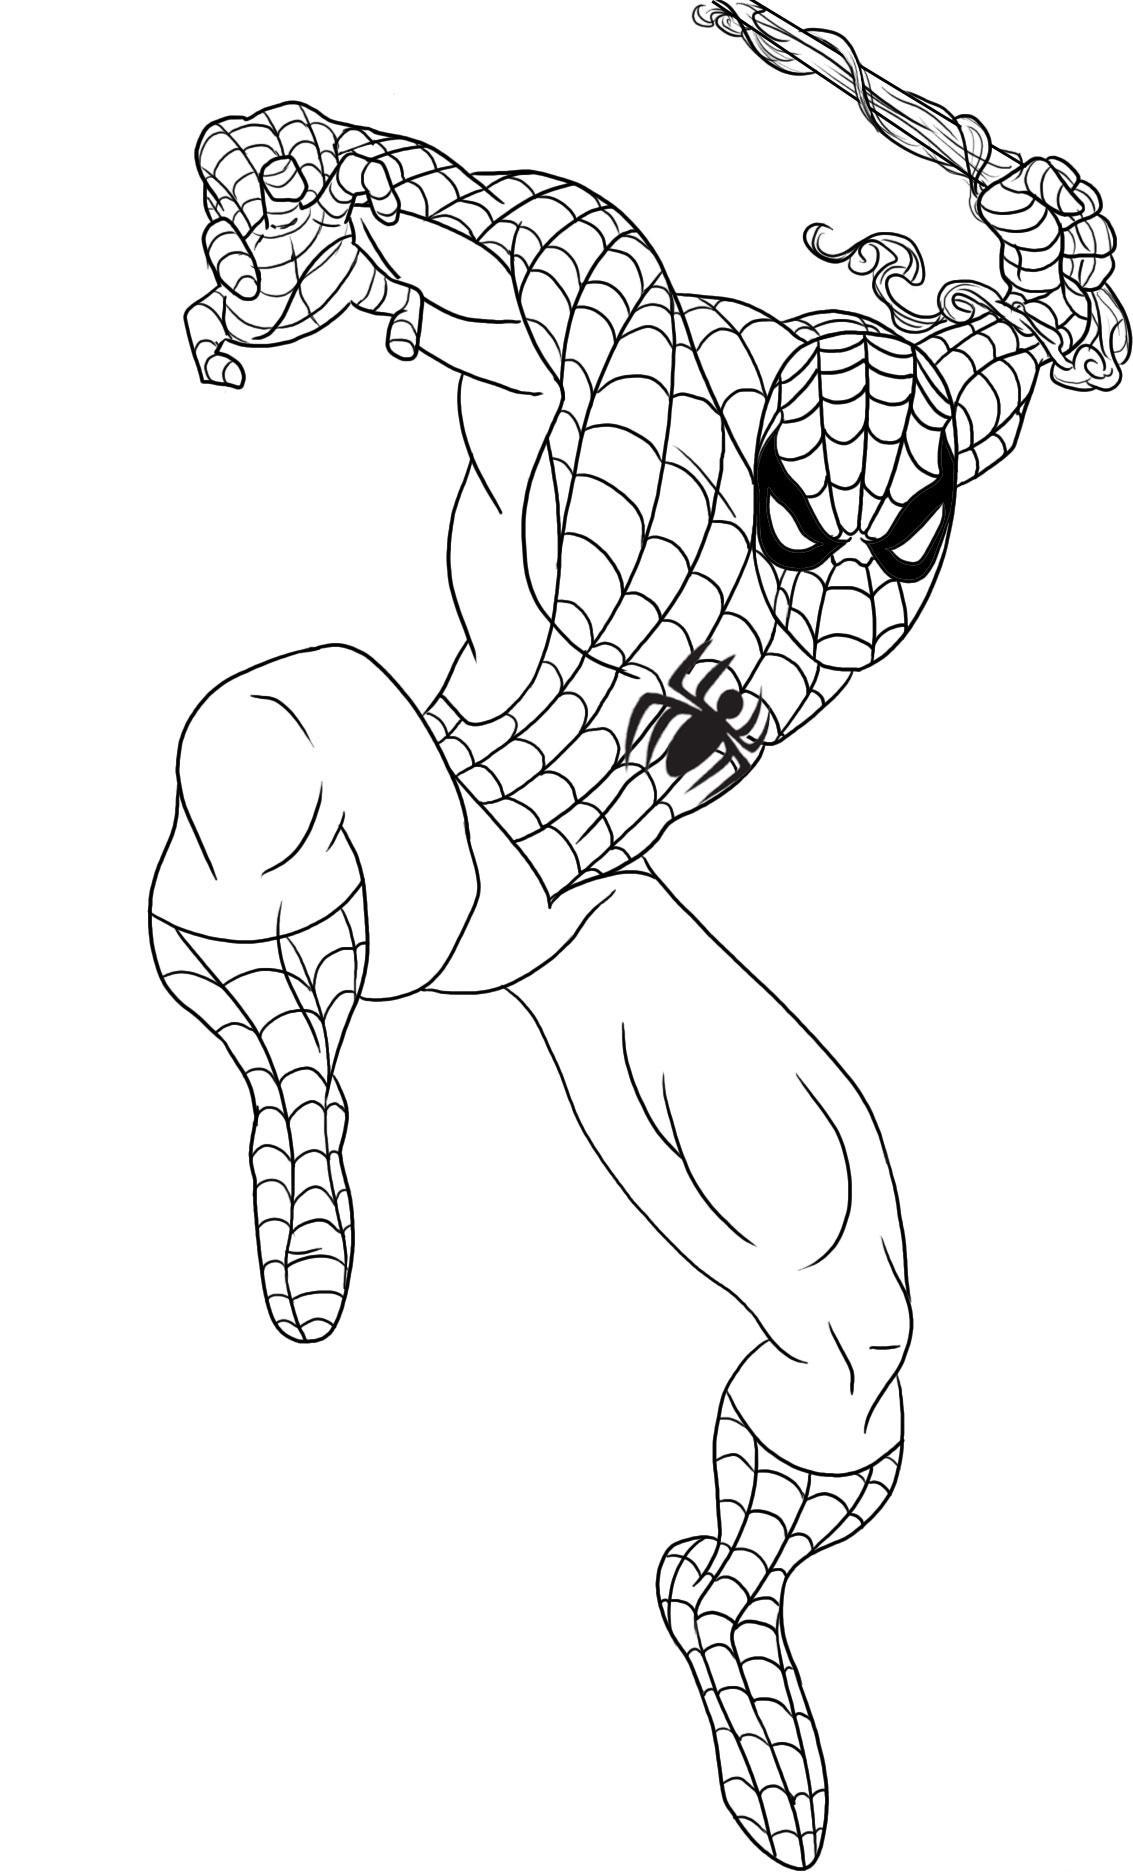 Pin on spiderman coloring pages for kids | 1872x1133